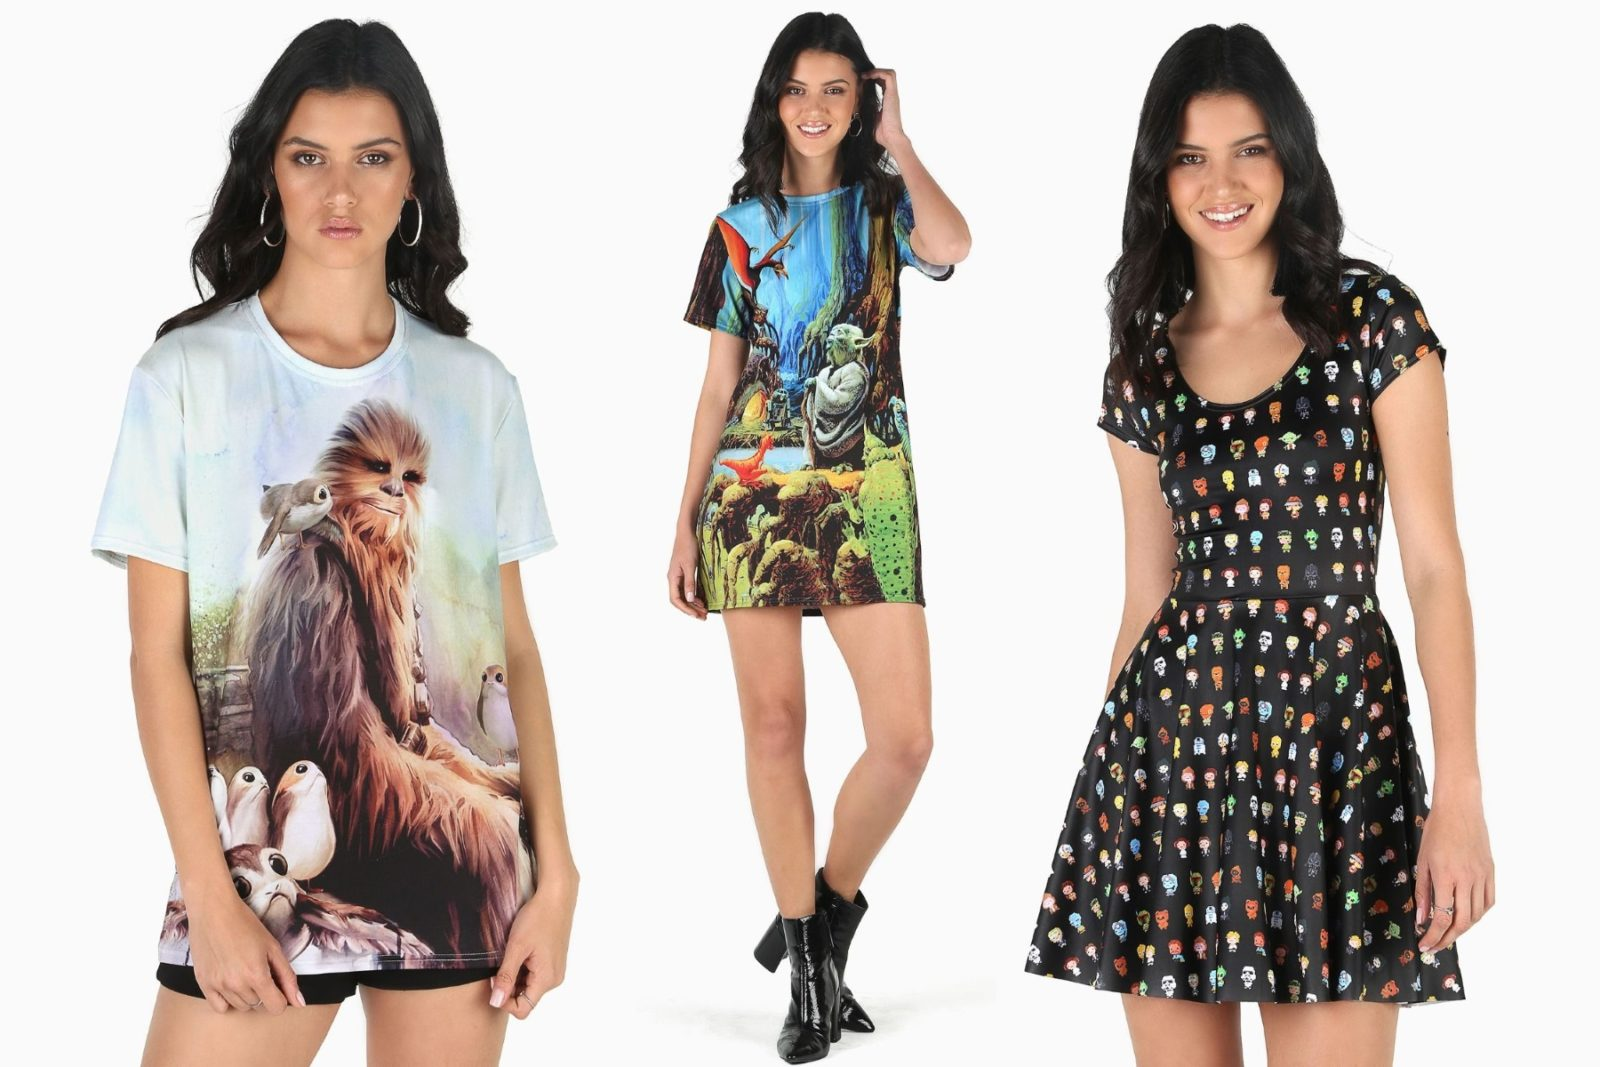 Black Milk Clothing x Star Wars Now Available!